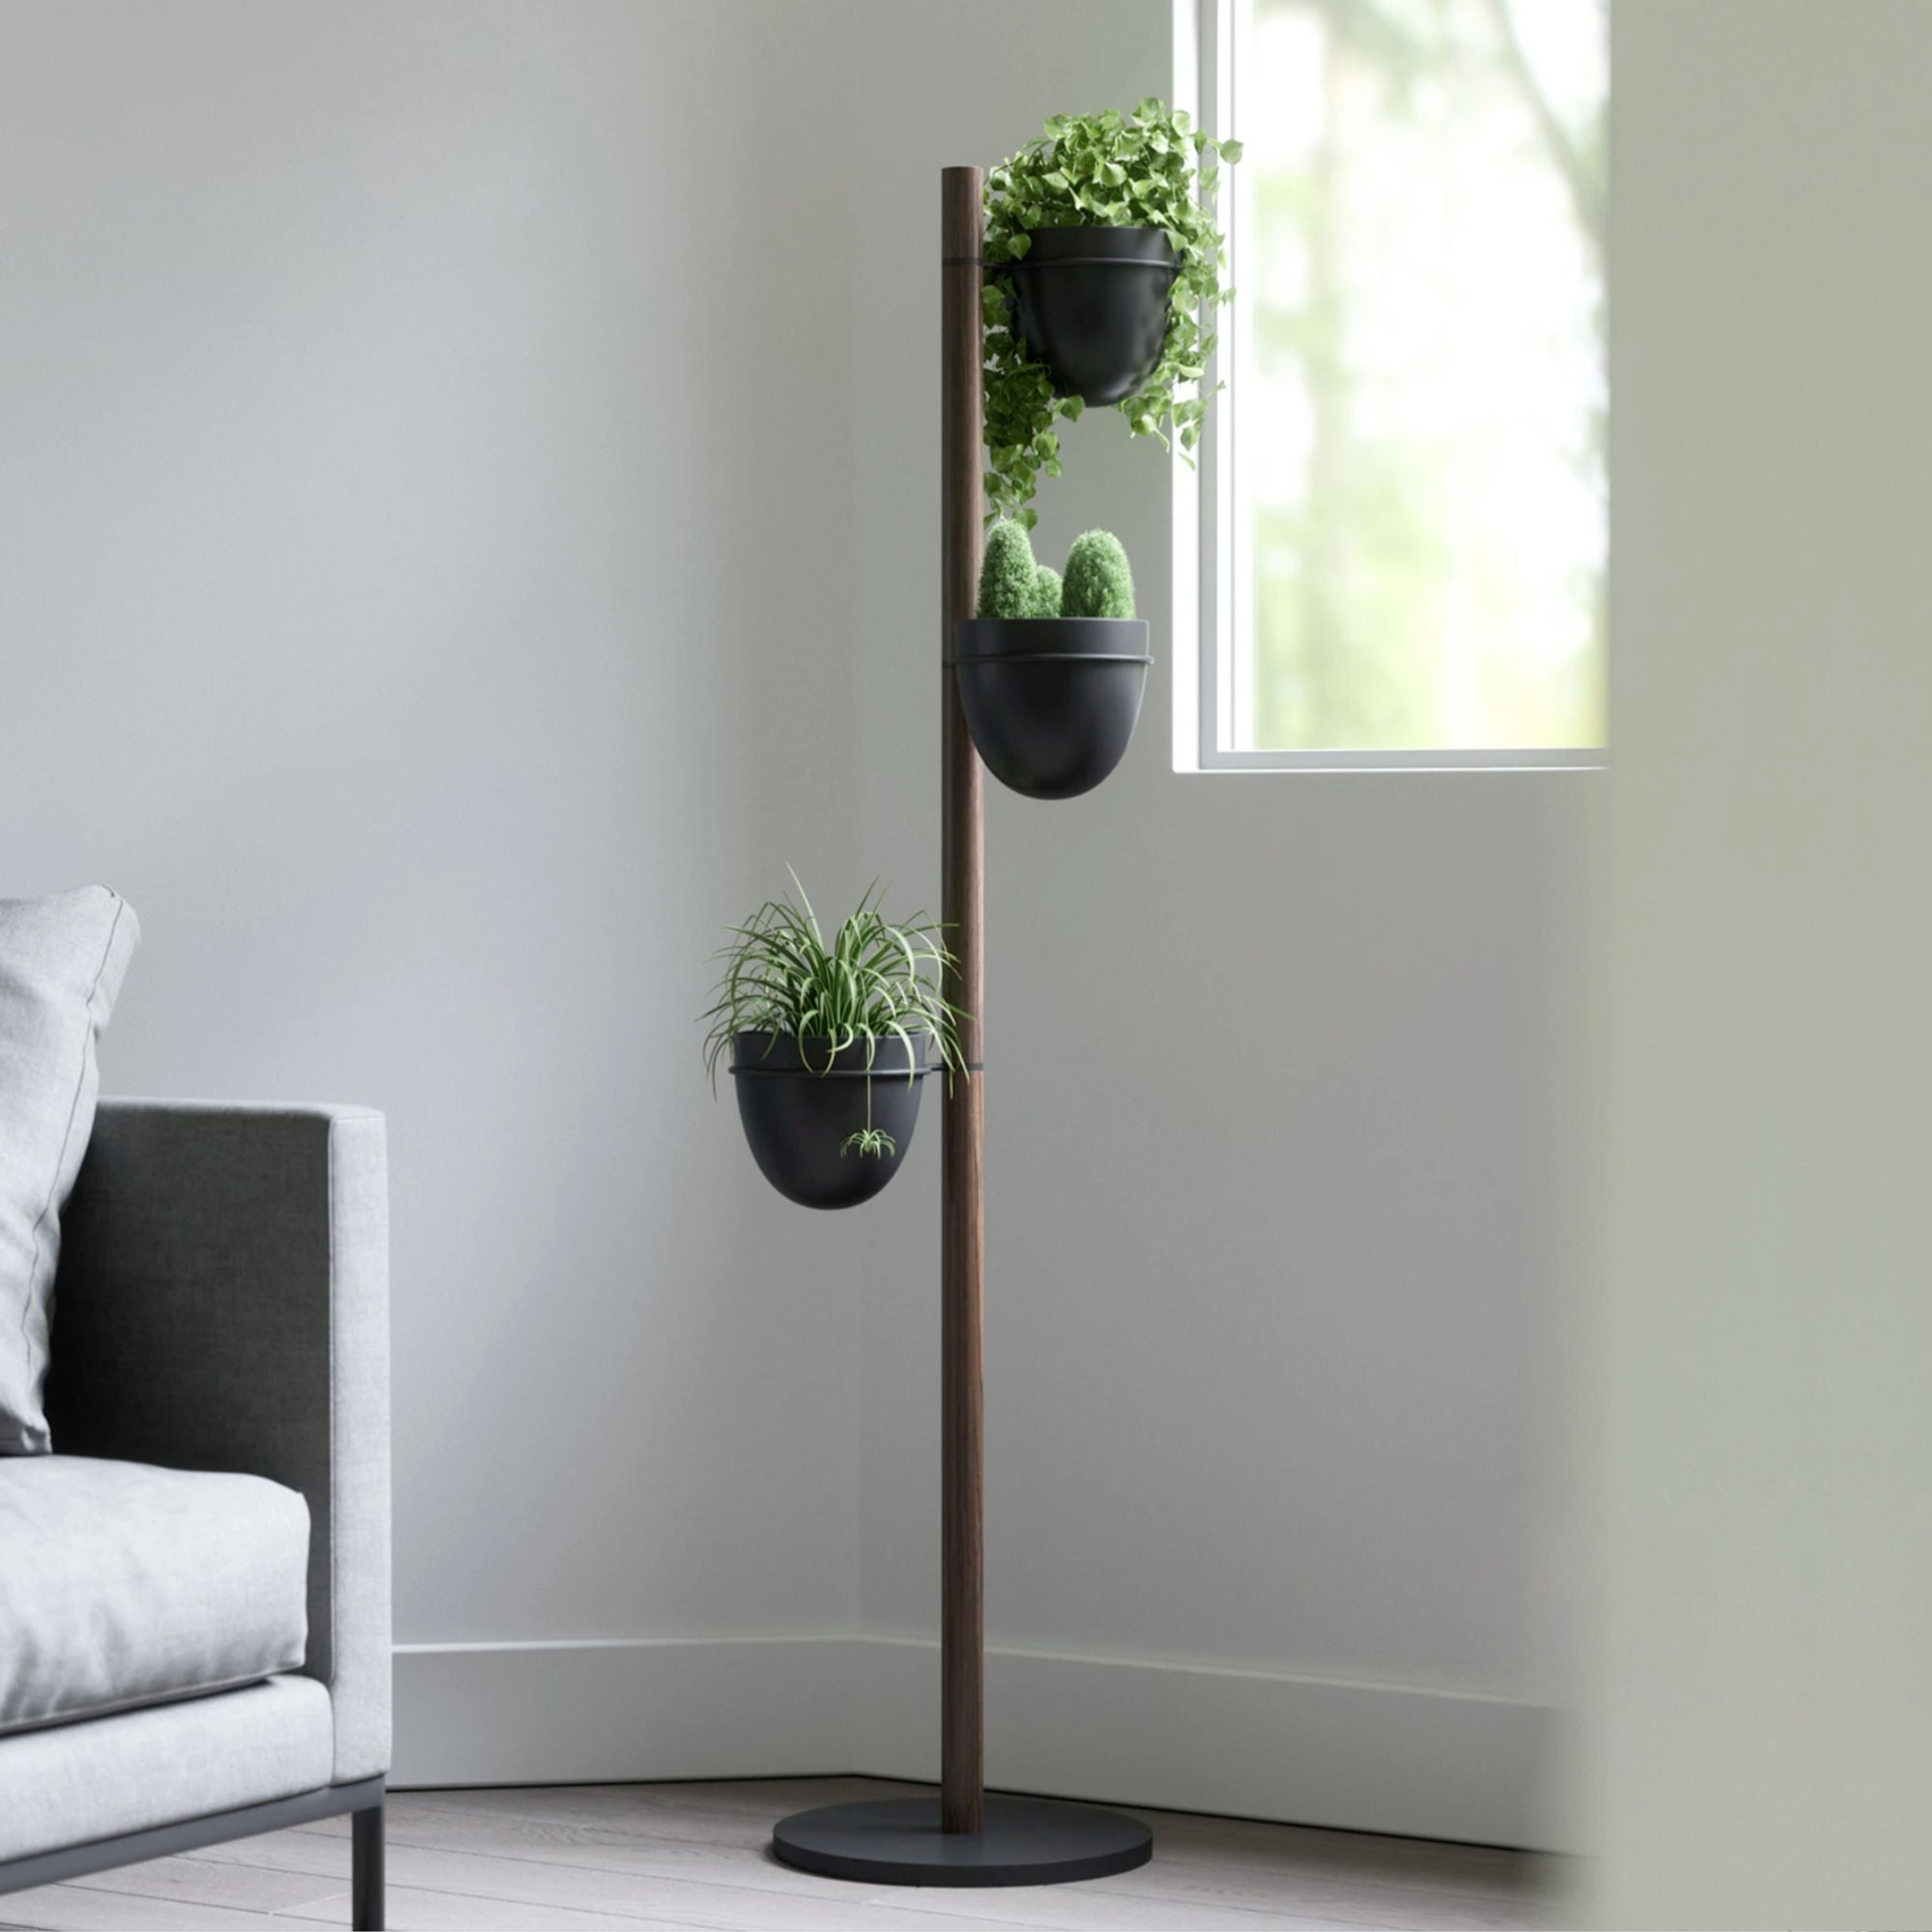 Umbra Floristand Planter , Black/Walnut